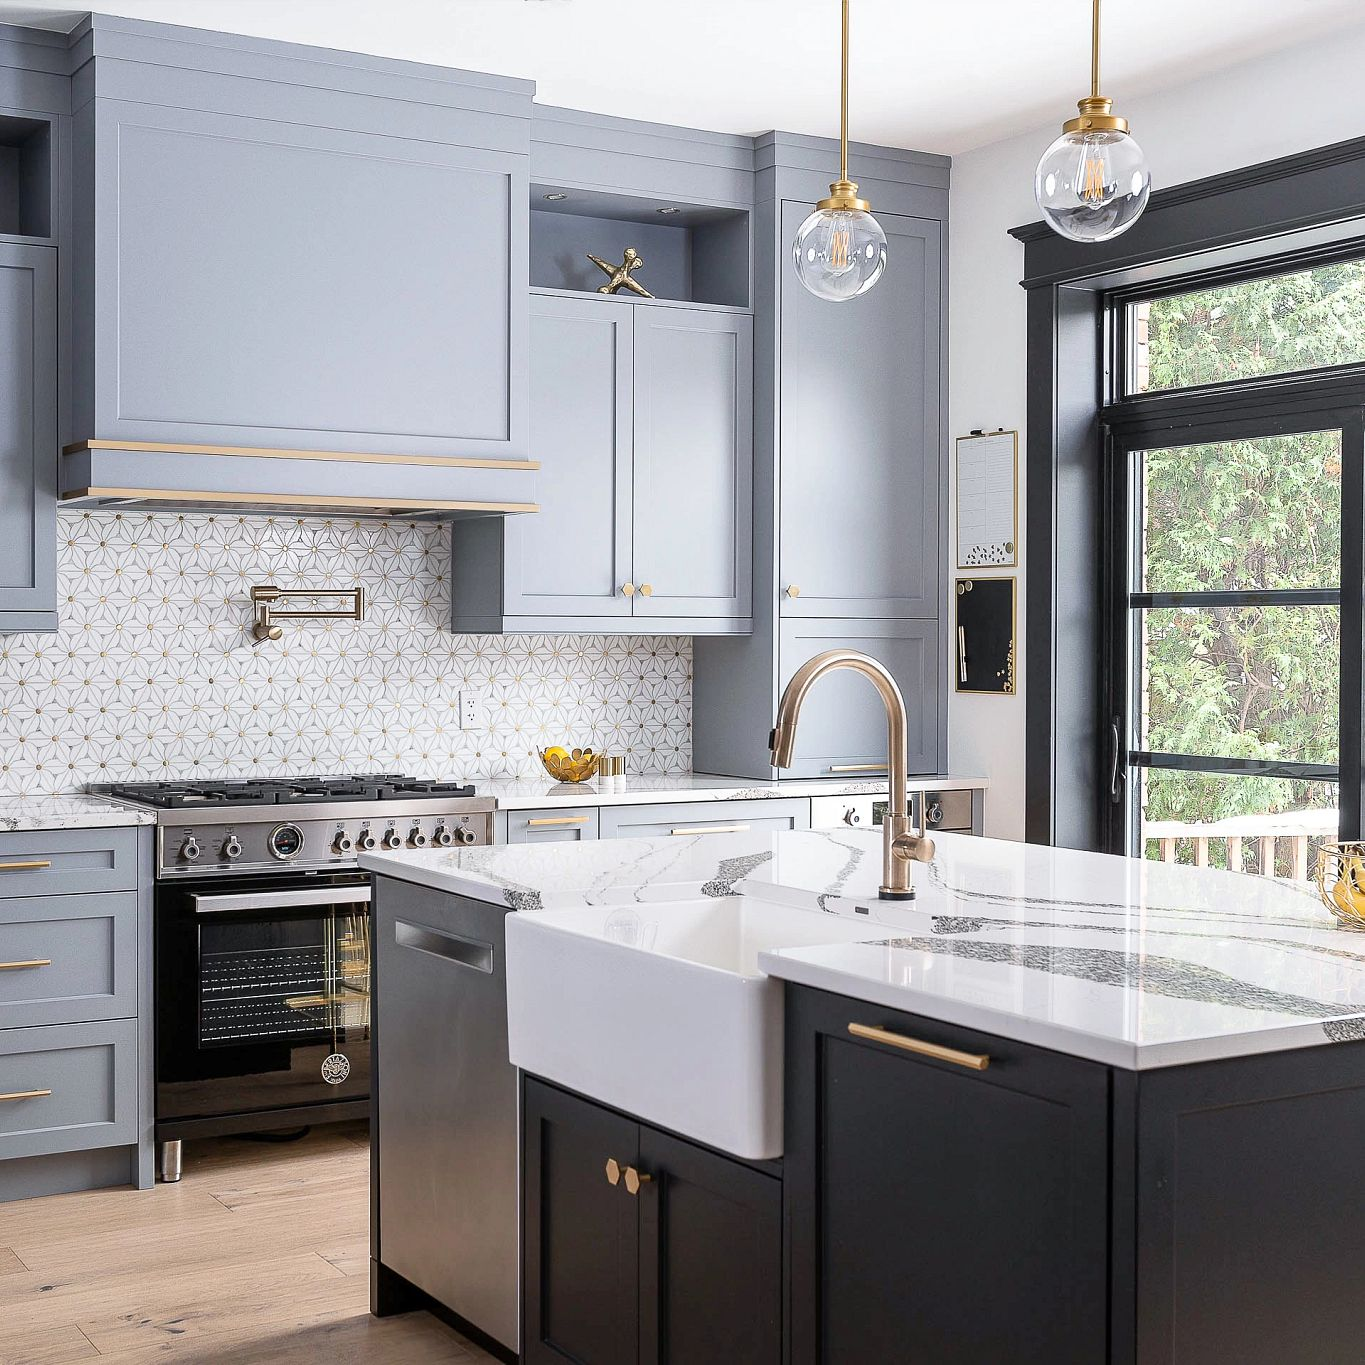 Cambria Anicca paired with white chevron tile backsplash.